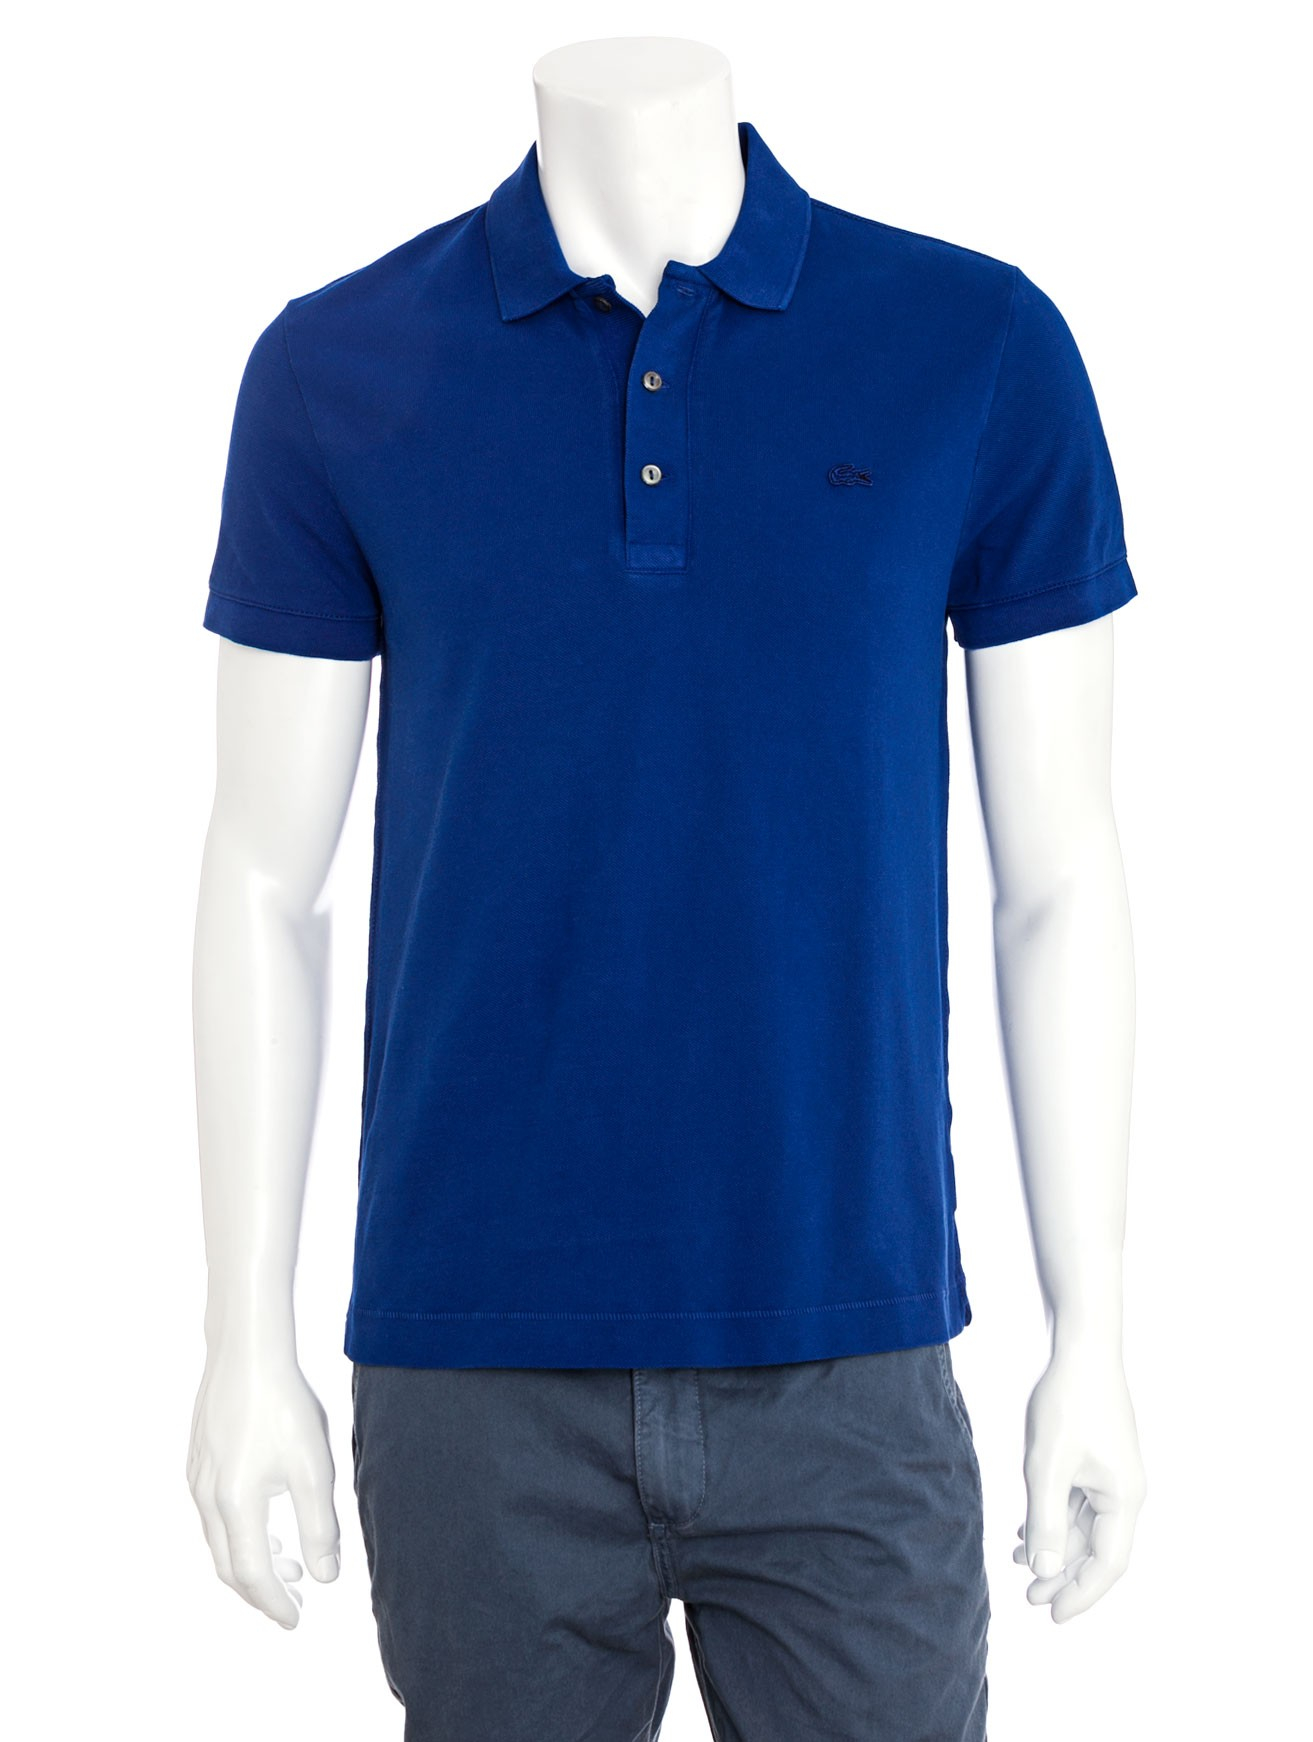 Lacoste slimfit vintage wash polo shirt in blue for men for Lacoste poloshirt weiay